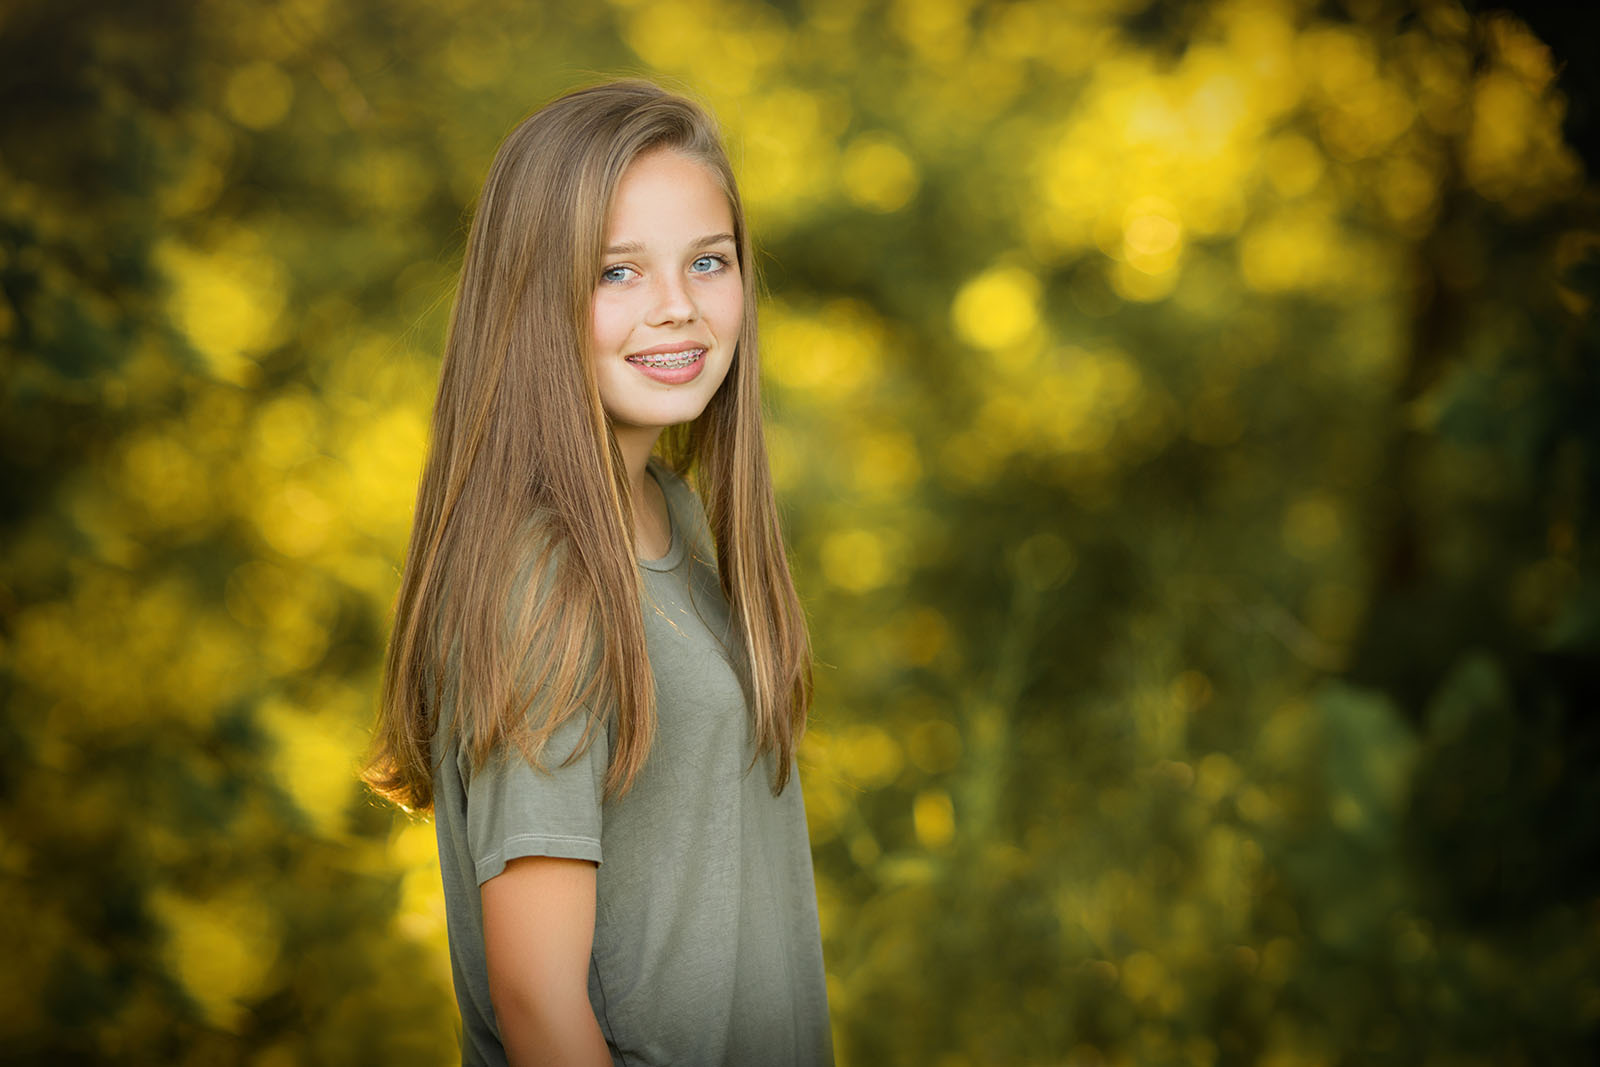 Intro to natural light photography workshop with Lisa Harrison